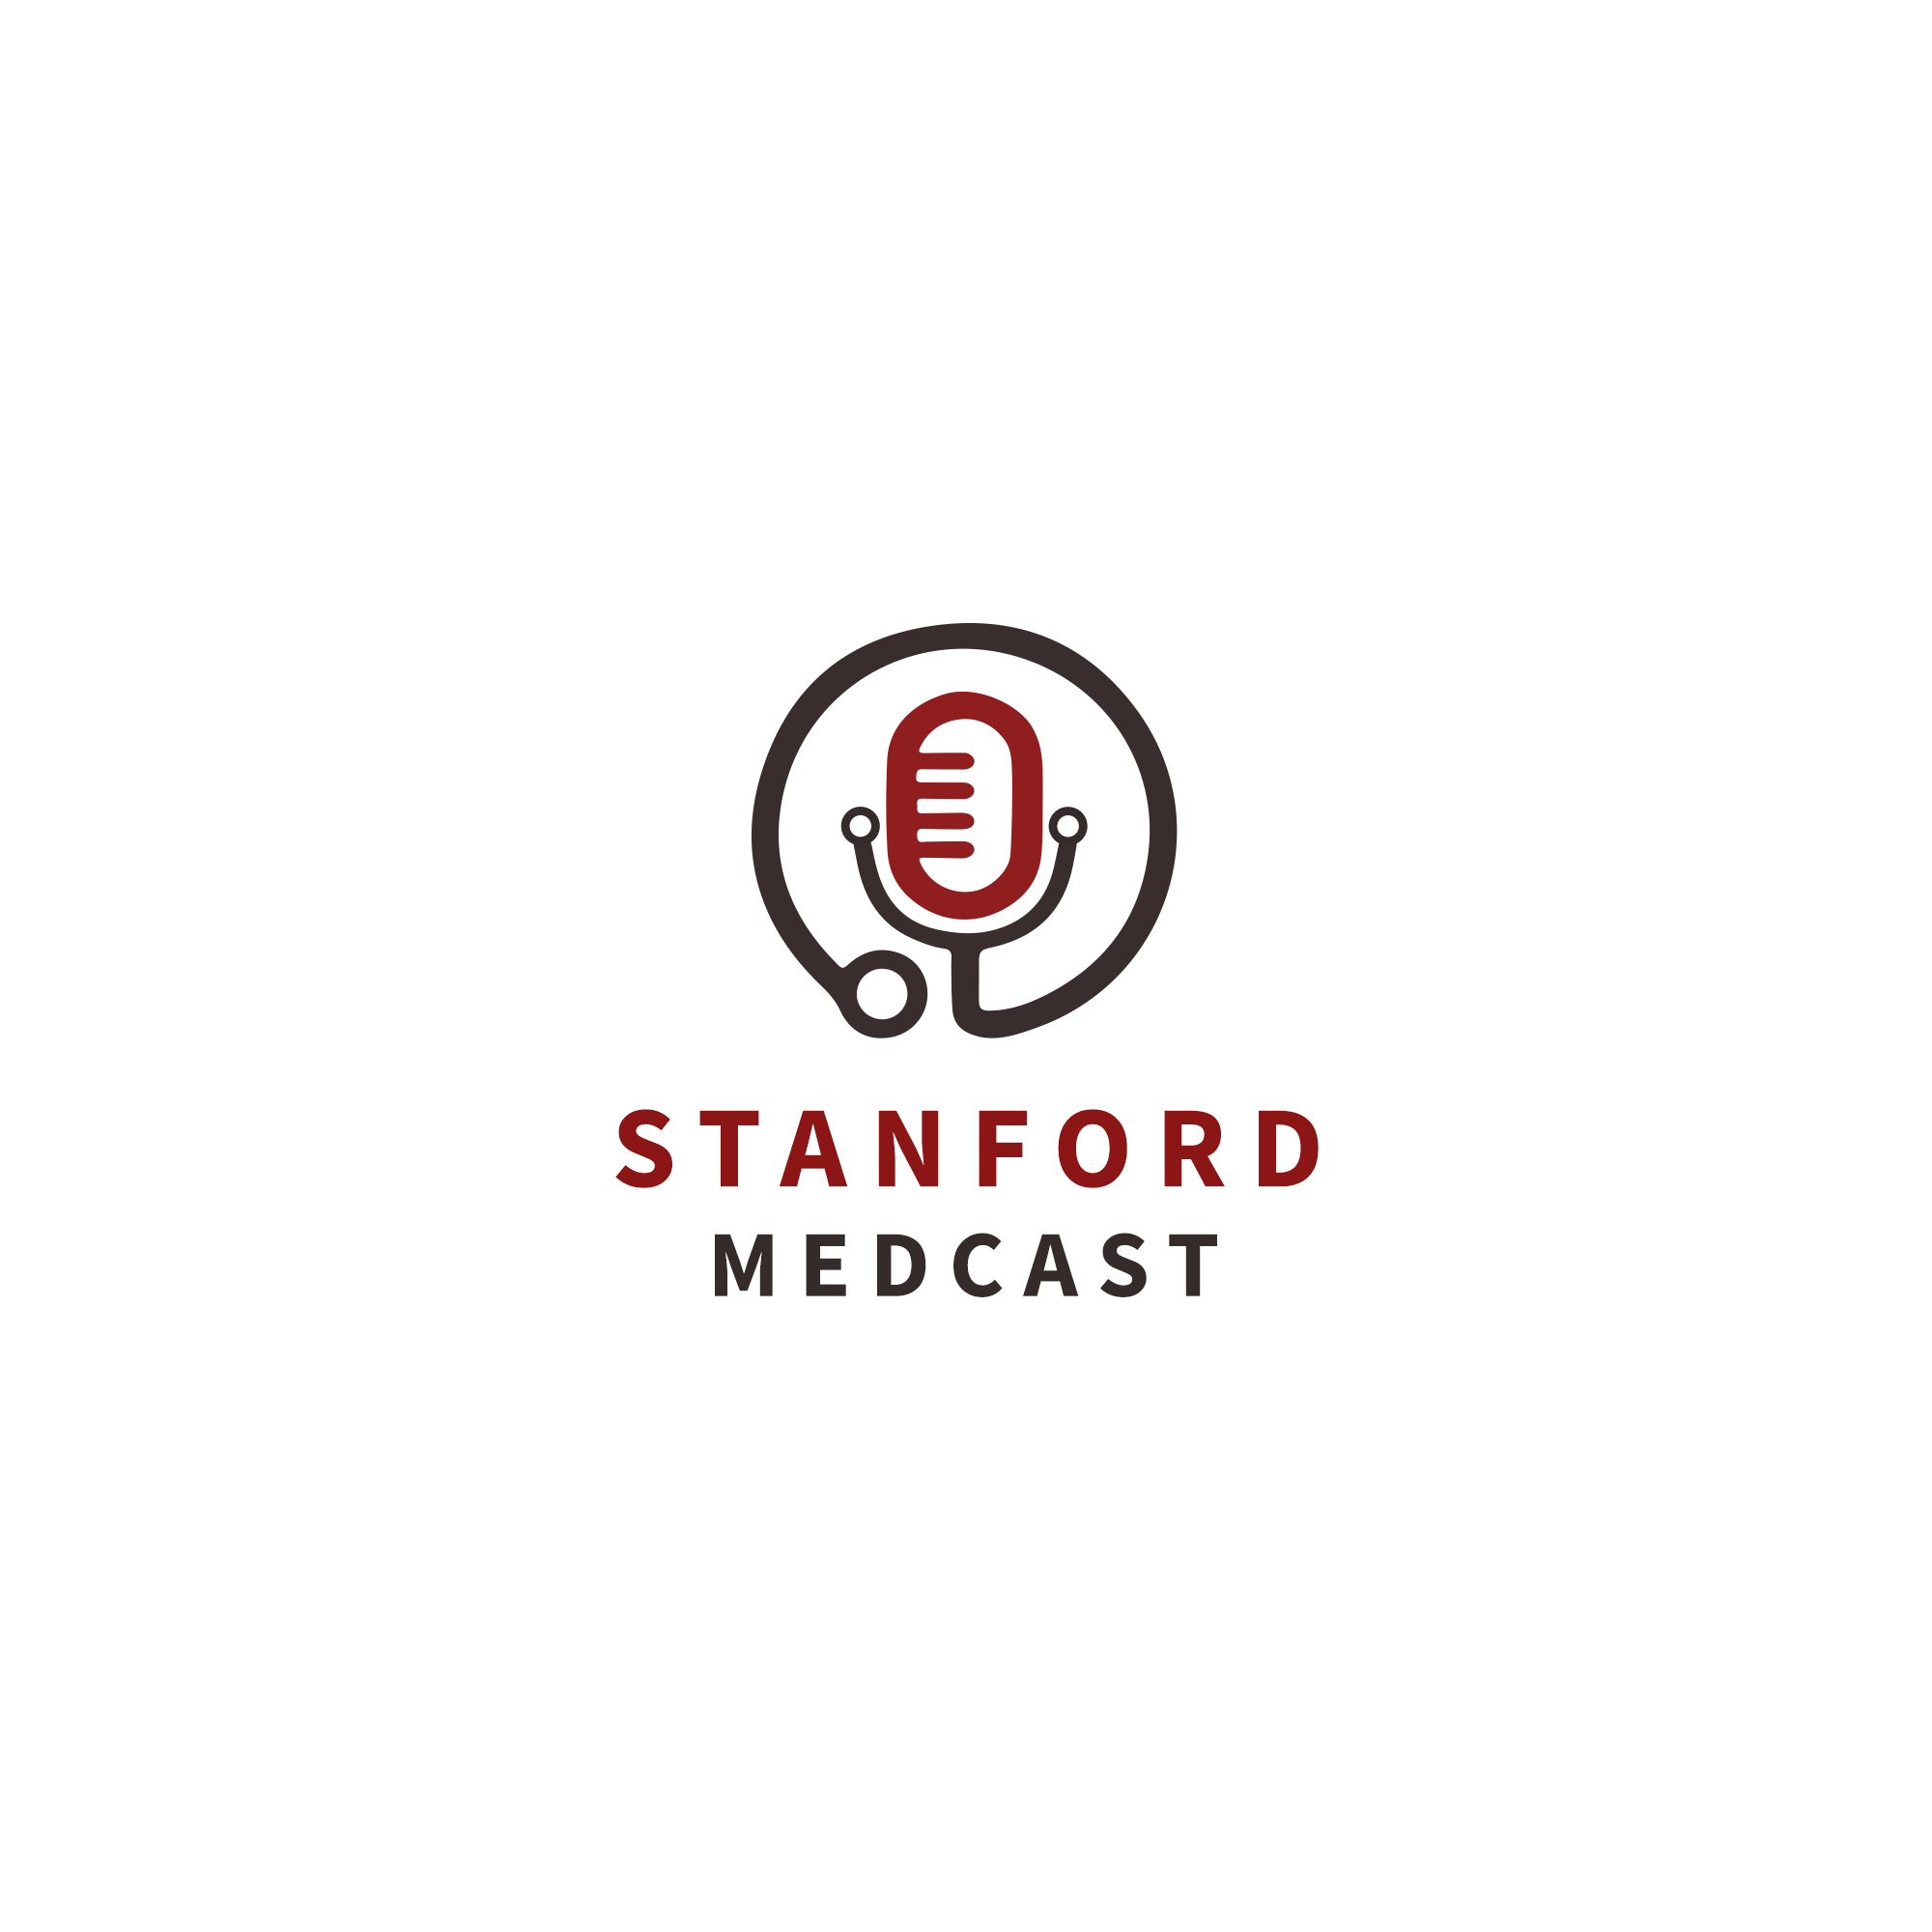 Stanford Medcast Episode 4: COVID-19 Mini-series - A Brief Overview of Monoclonal Antibodies Banner